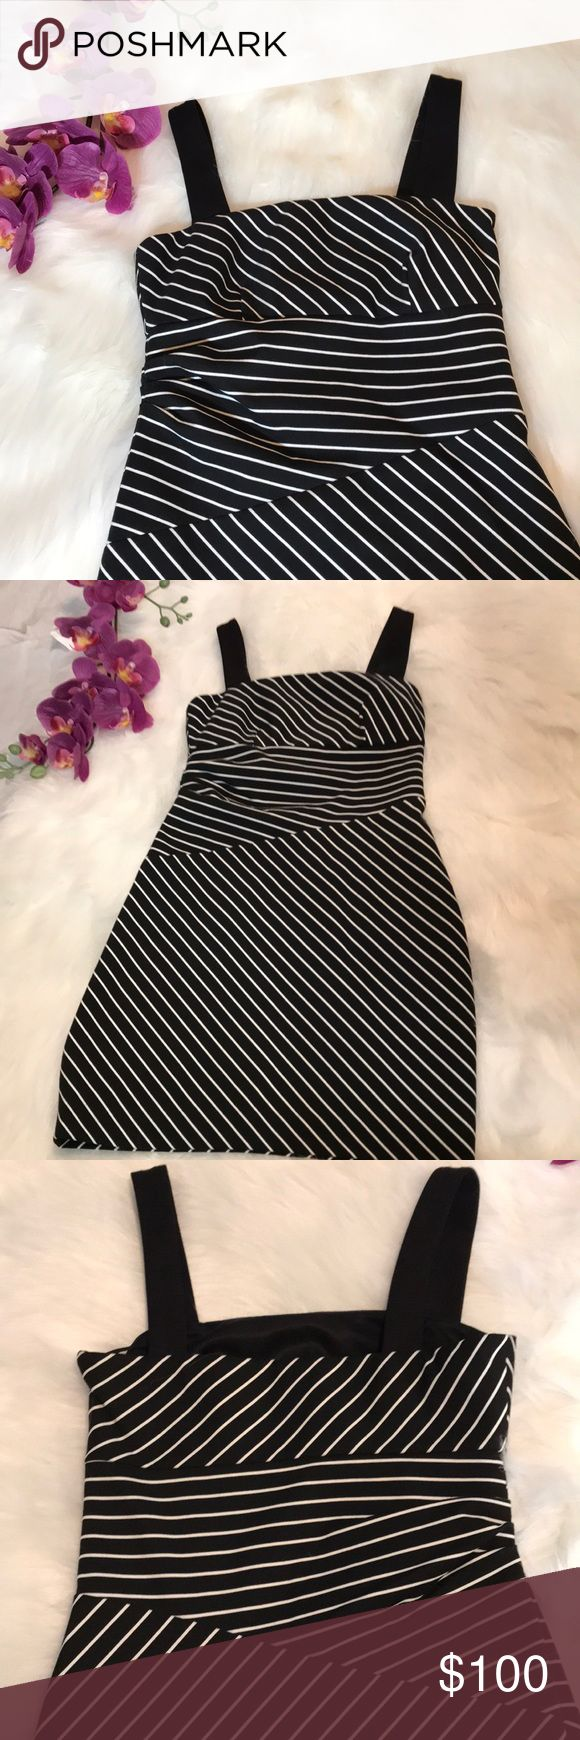 "CYNTHIA STEFFE STRIPED DRESS SZ 0 NWOT NWOT NEVER WORN PERFECT CONDITION.... CYNTHIA STEFFE BLACK AND WHITE STRIPED DRESS SIZE 0, ZIPPERS AT THE SIDE, MEASURES 26""LENGTH 28"" WAIST AND 26"" BUST. GREAT DRESS FOR A NIGHT OUT Cynthia Steffe Dresses Mini"